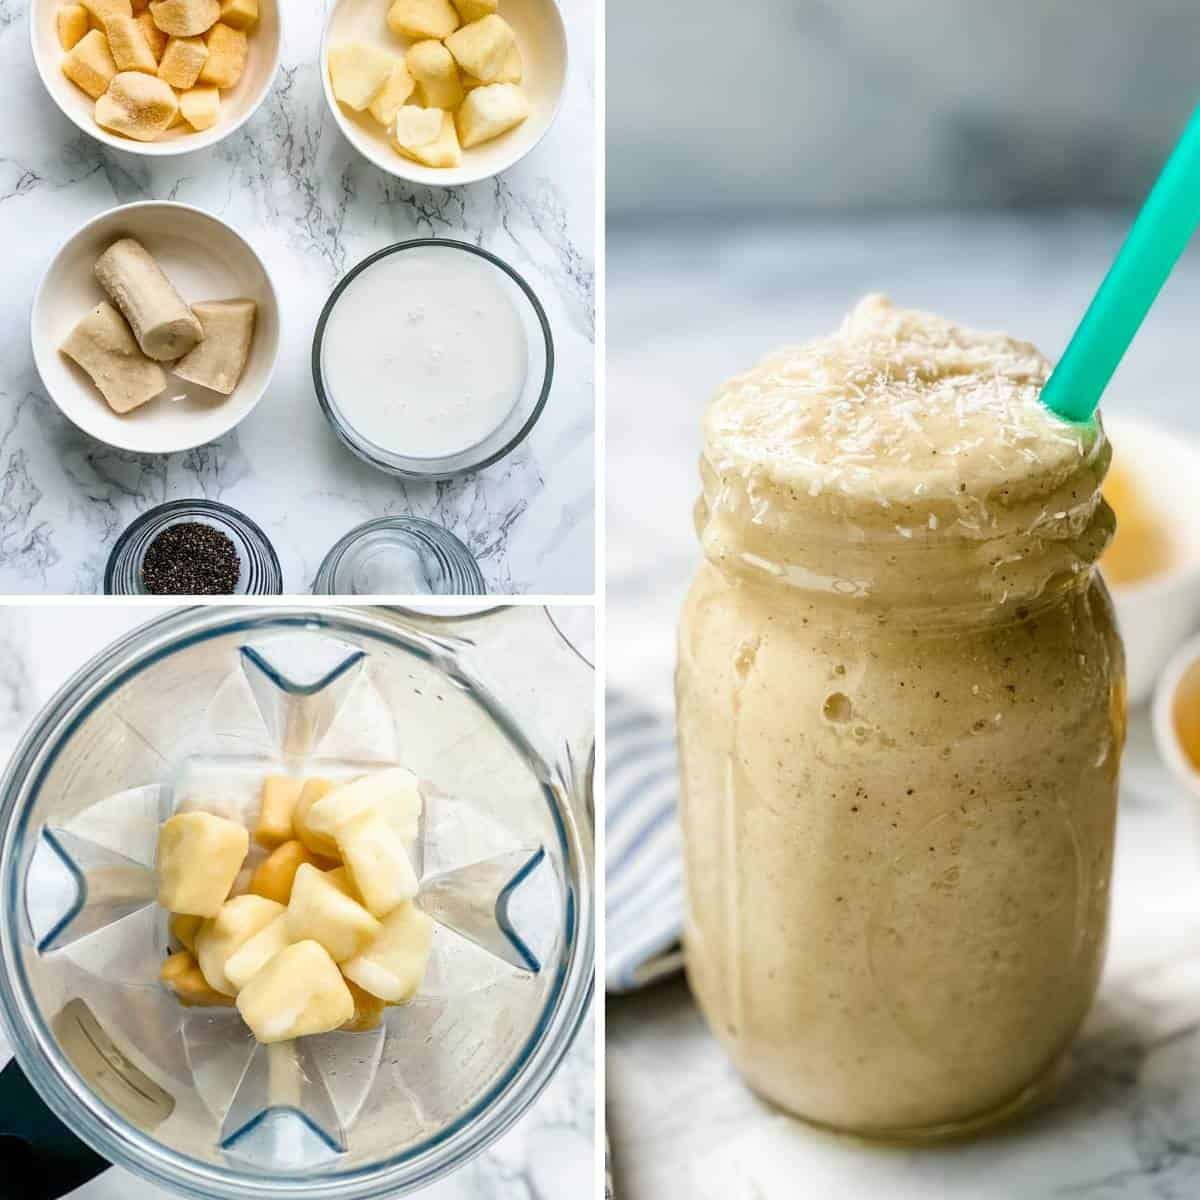 step by step collage showing how to make tropical smoothie recipe